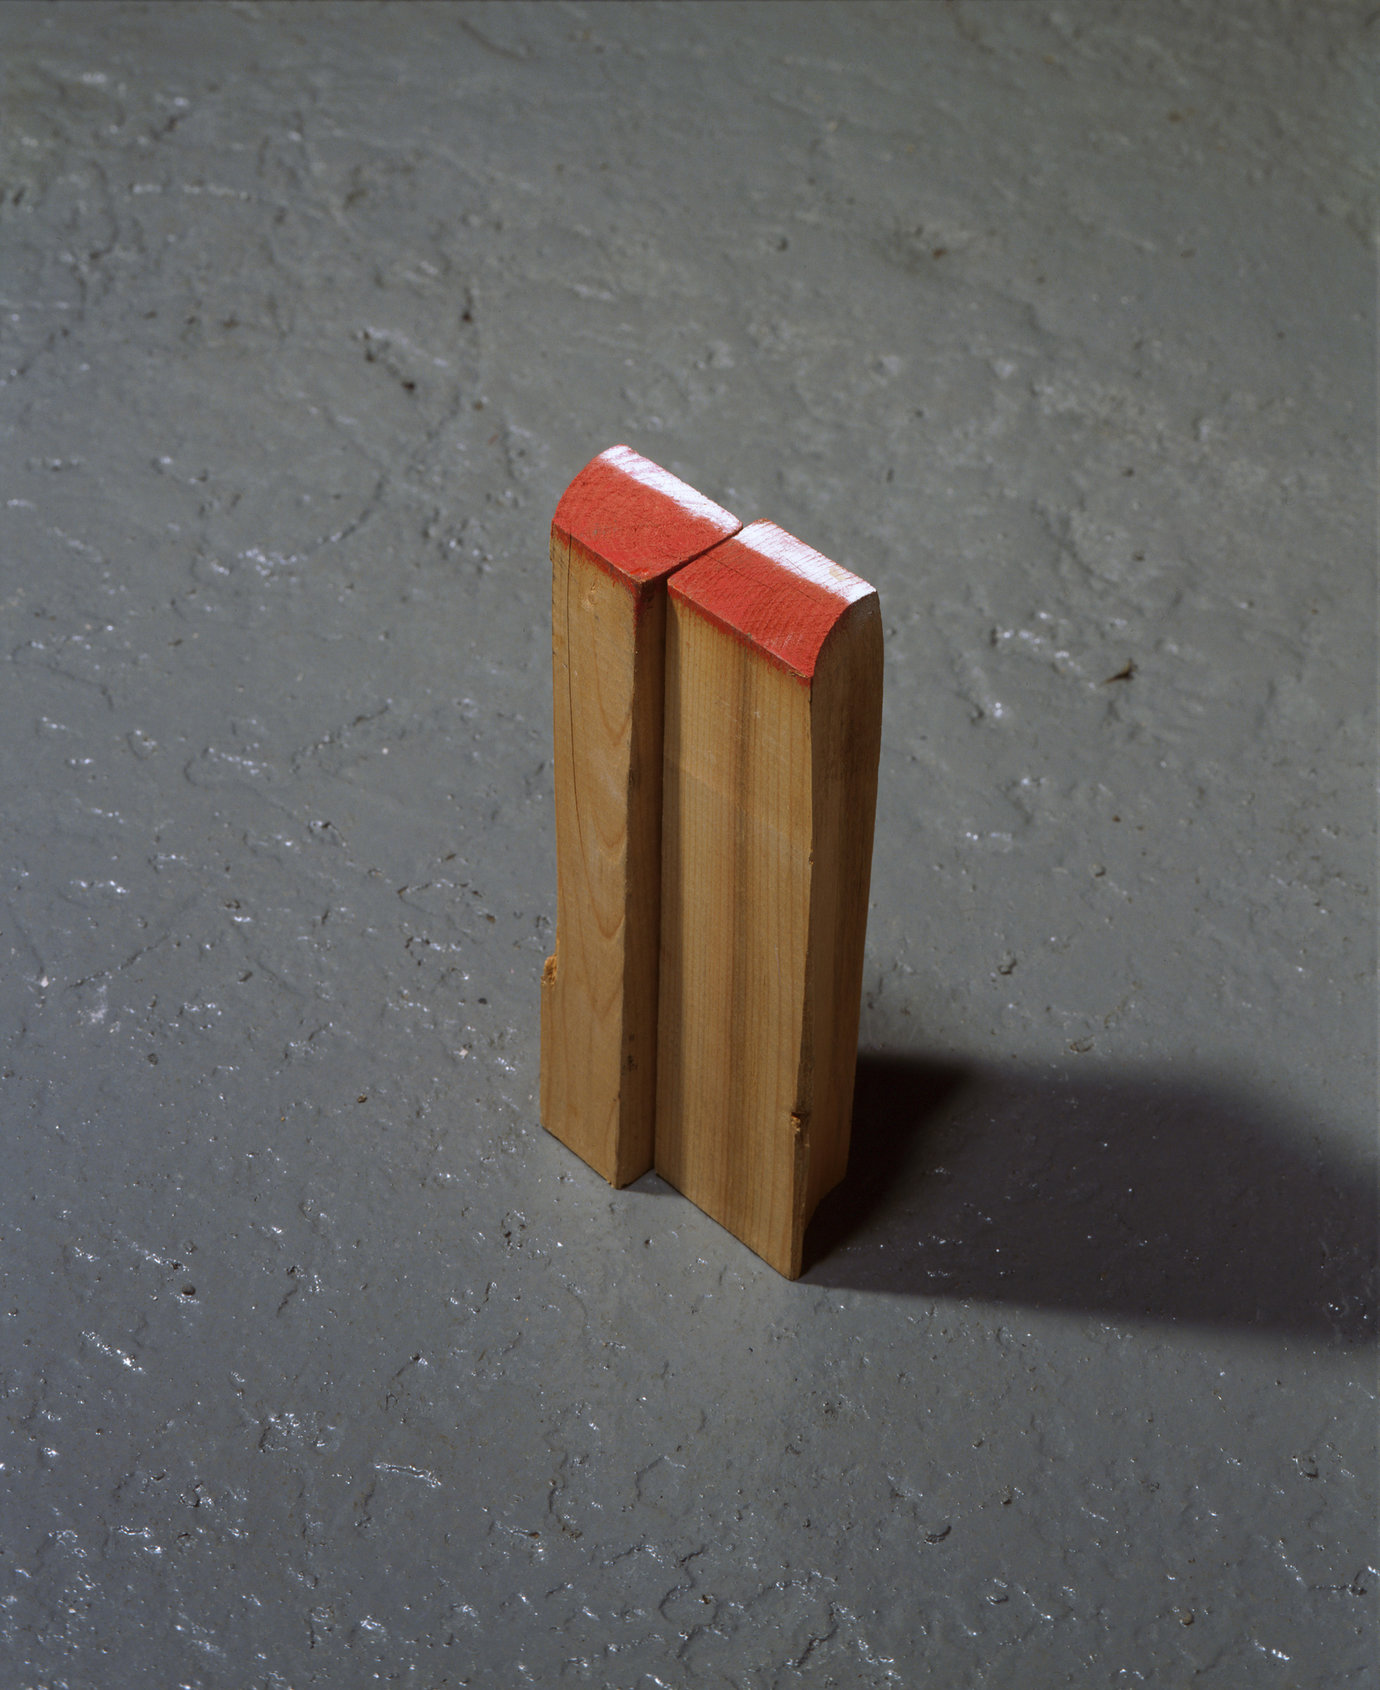 ", 2007. Wood, paint, 8-3/4"" x 4"" x 1-3/4"" (22.2 cm x 10.2 cm x 4.4 cm)."